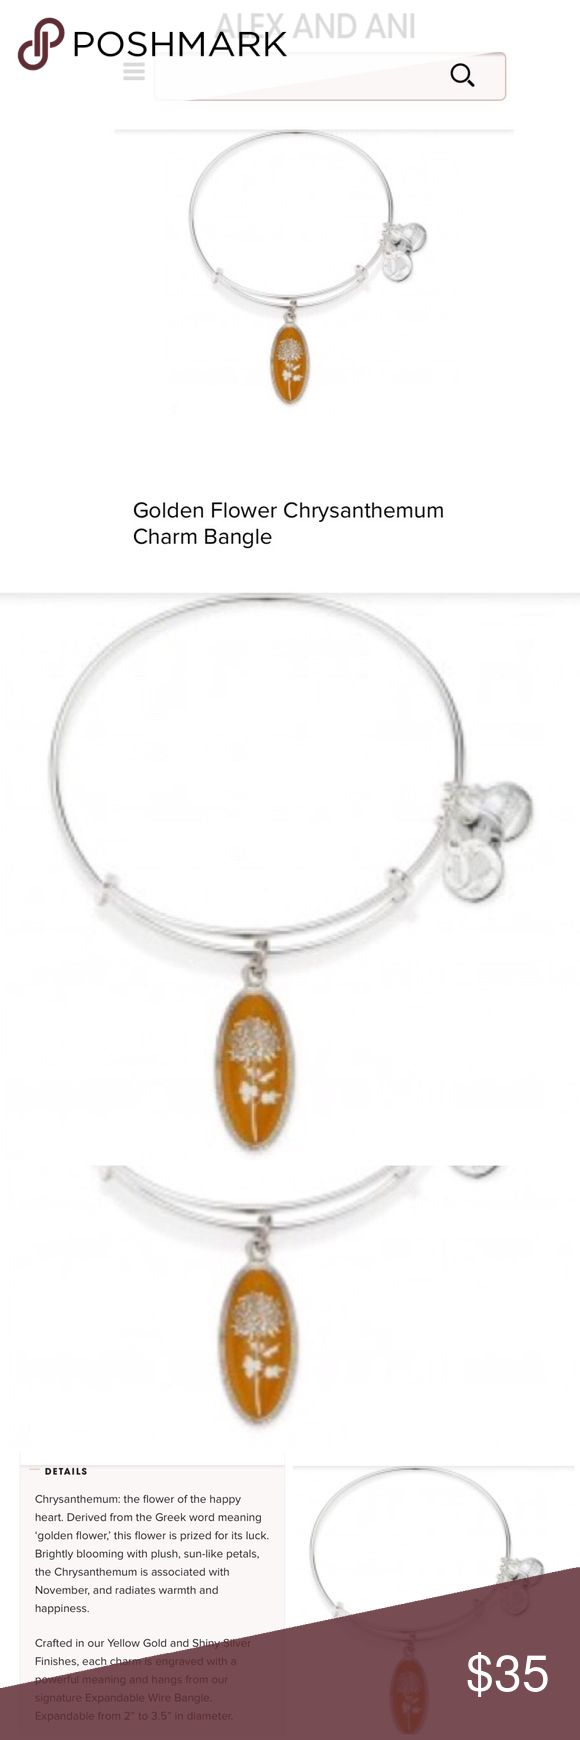 NWT Alex & Ani chrysanthemum bangle bracelet NWT Authentic Alex & Ani Golden Flower Chrysanthemum charm bangle in silver finish with expandable wire bangle that goes from 2 in to 3.5 in diameter..beautiful golden yellow flower charm that represents the birth month of November..Chrysanthemum is the golden flower and represents warmth and happiness. Comes with Alex & Ani box..Stock photos pictured with actual bracelet in last pic. Alex & Ani Jewelry Bracelets